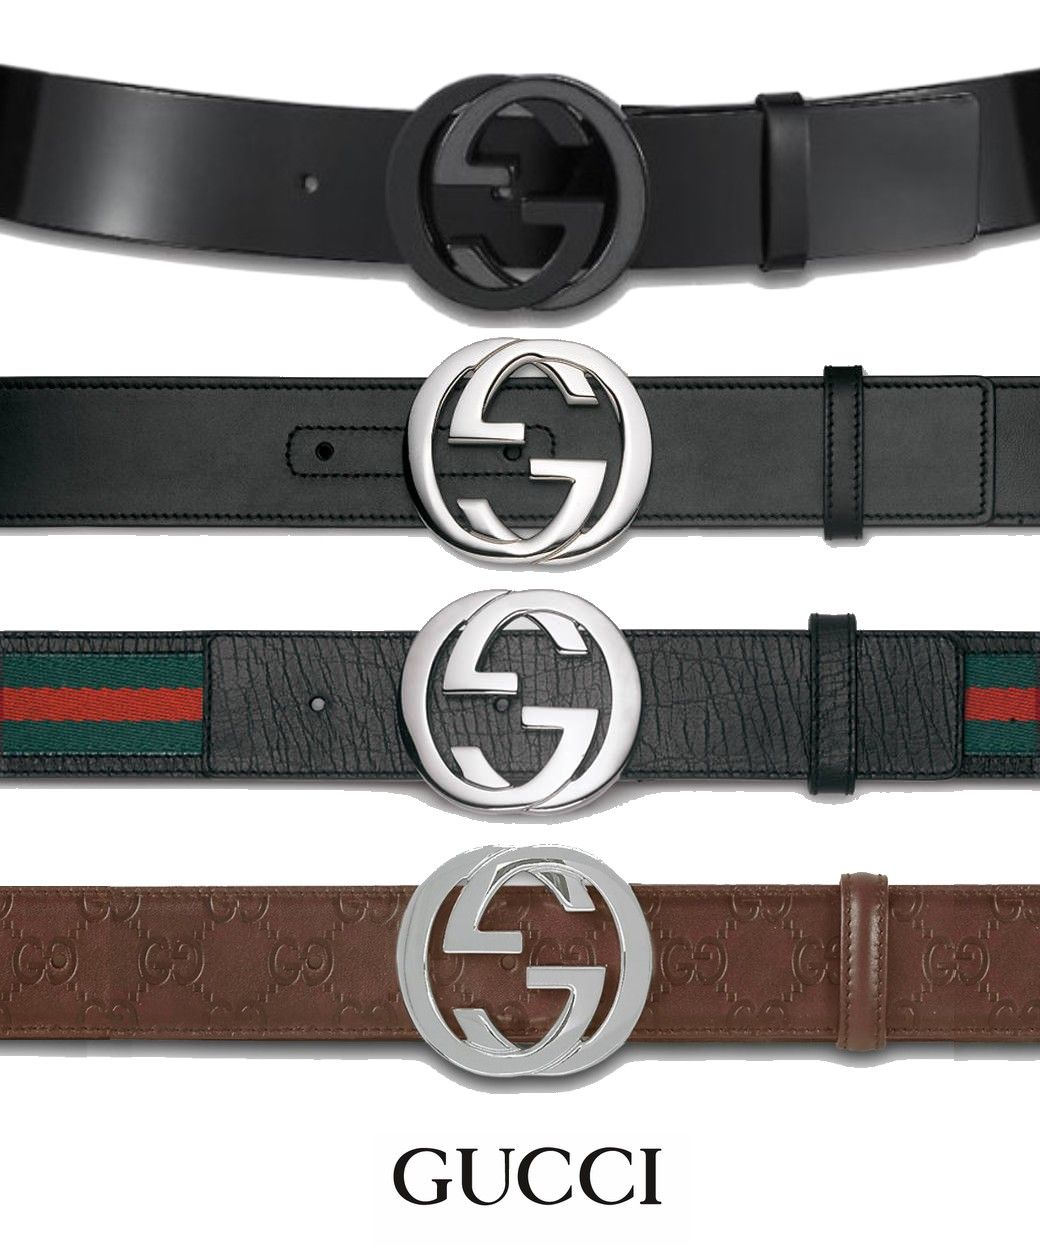 gucci belt ,love them all!